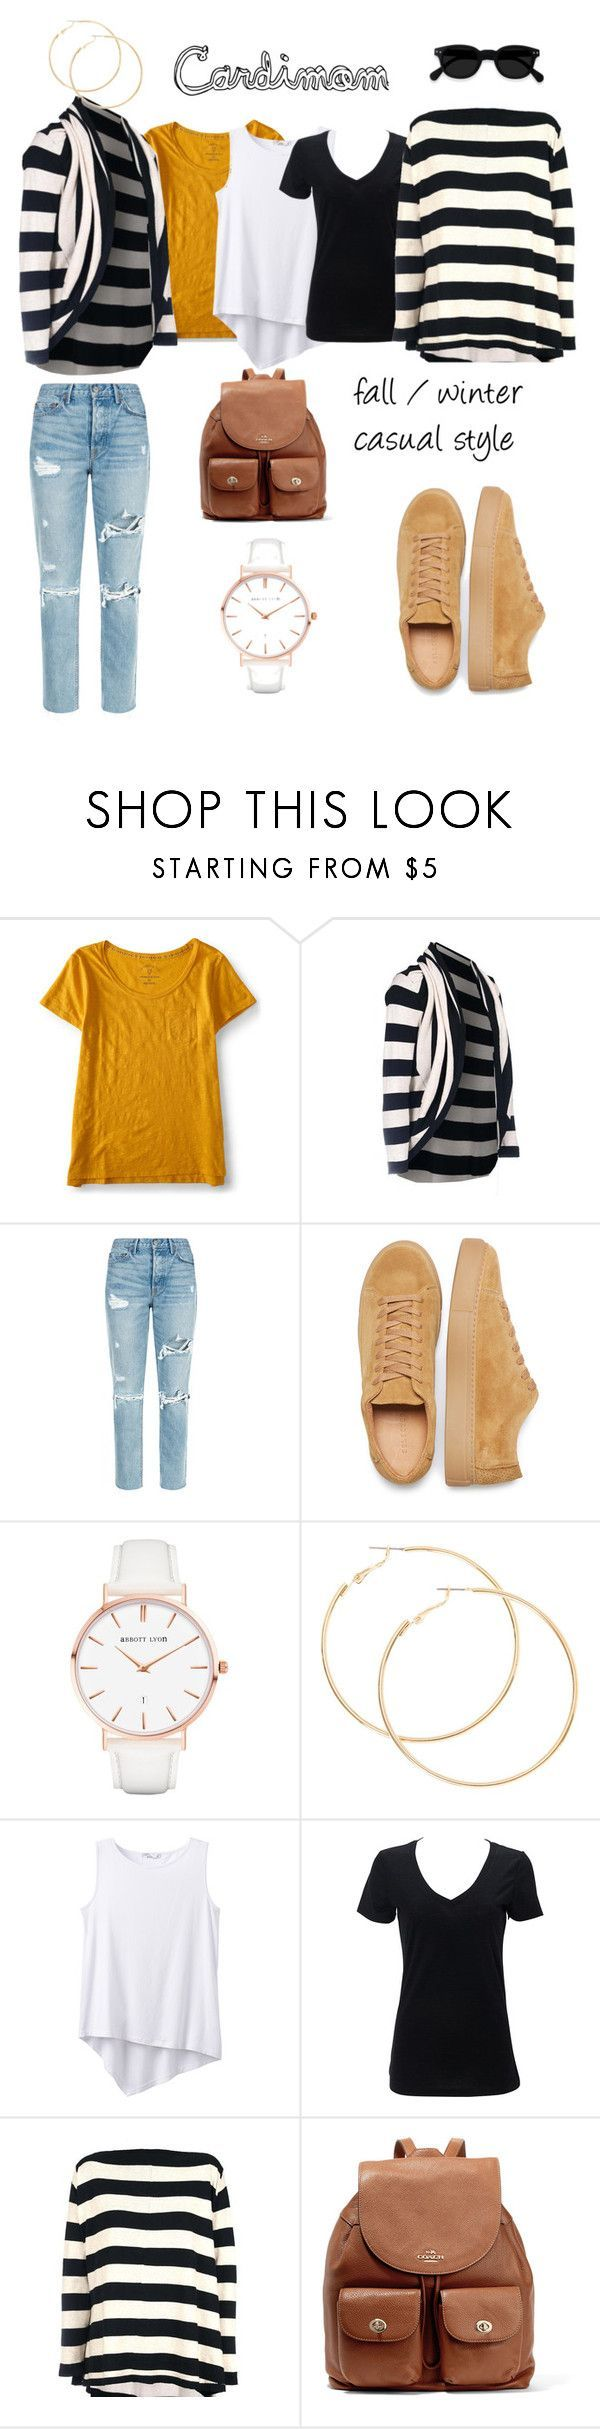 """Cardimom Alcatraz casual combo"" by multiwear on Polyvore featuring the Cardimom alcatraz stripes - top it on any casual ensemble and instantly step up your fashion game - perfect for mom life and all the twists and turns it brings"